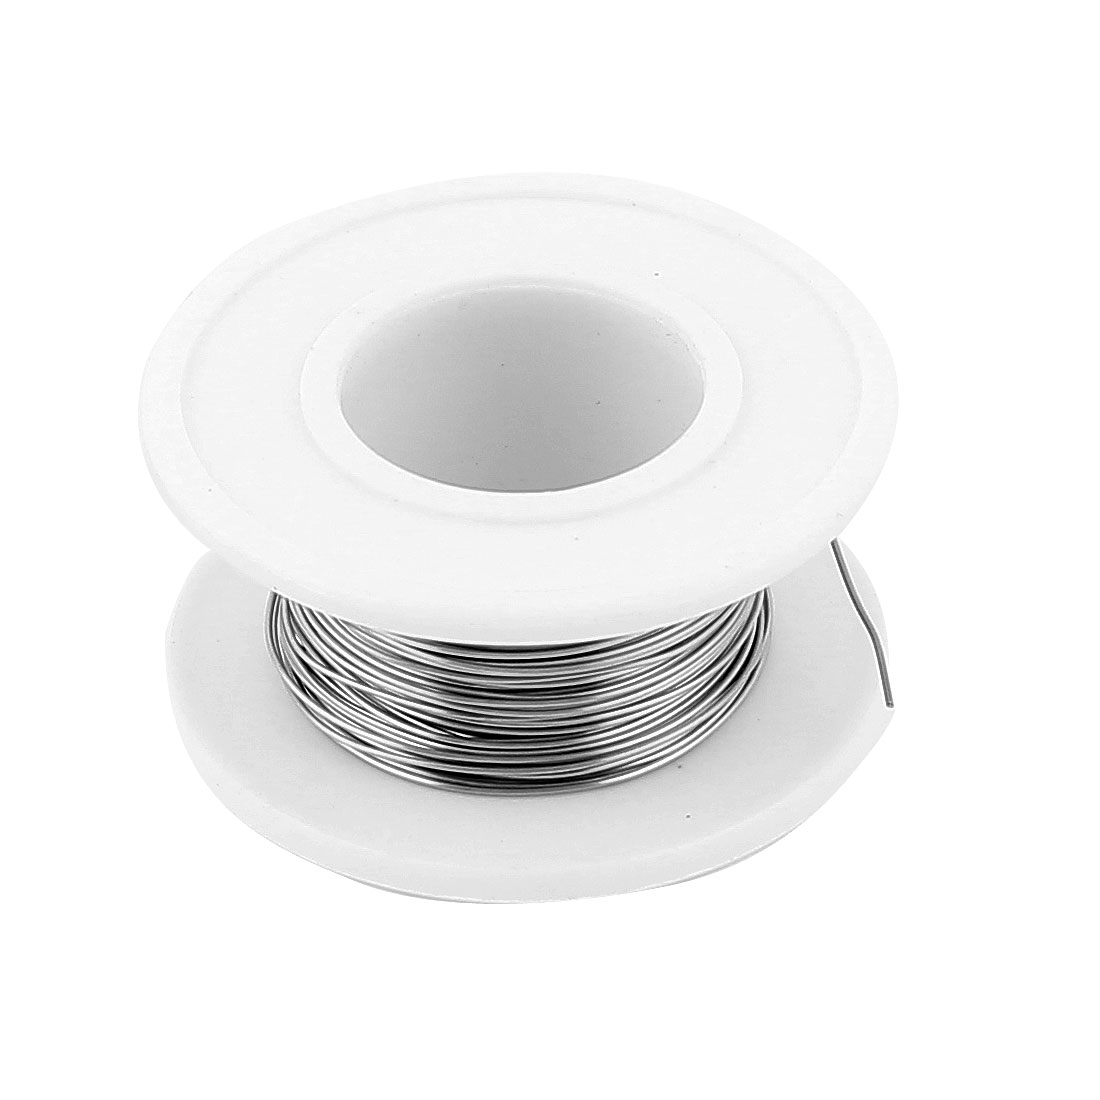 Nichrome 80 Round Wire 0.15mm 35Gauge AWG 114.8ft 61.68ohm/m Resistance